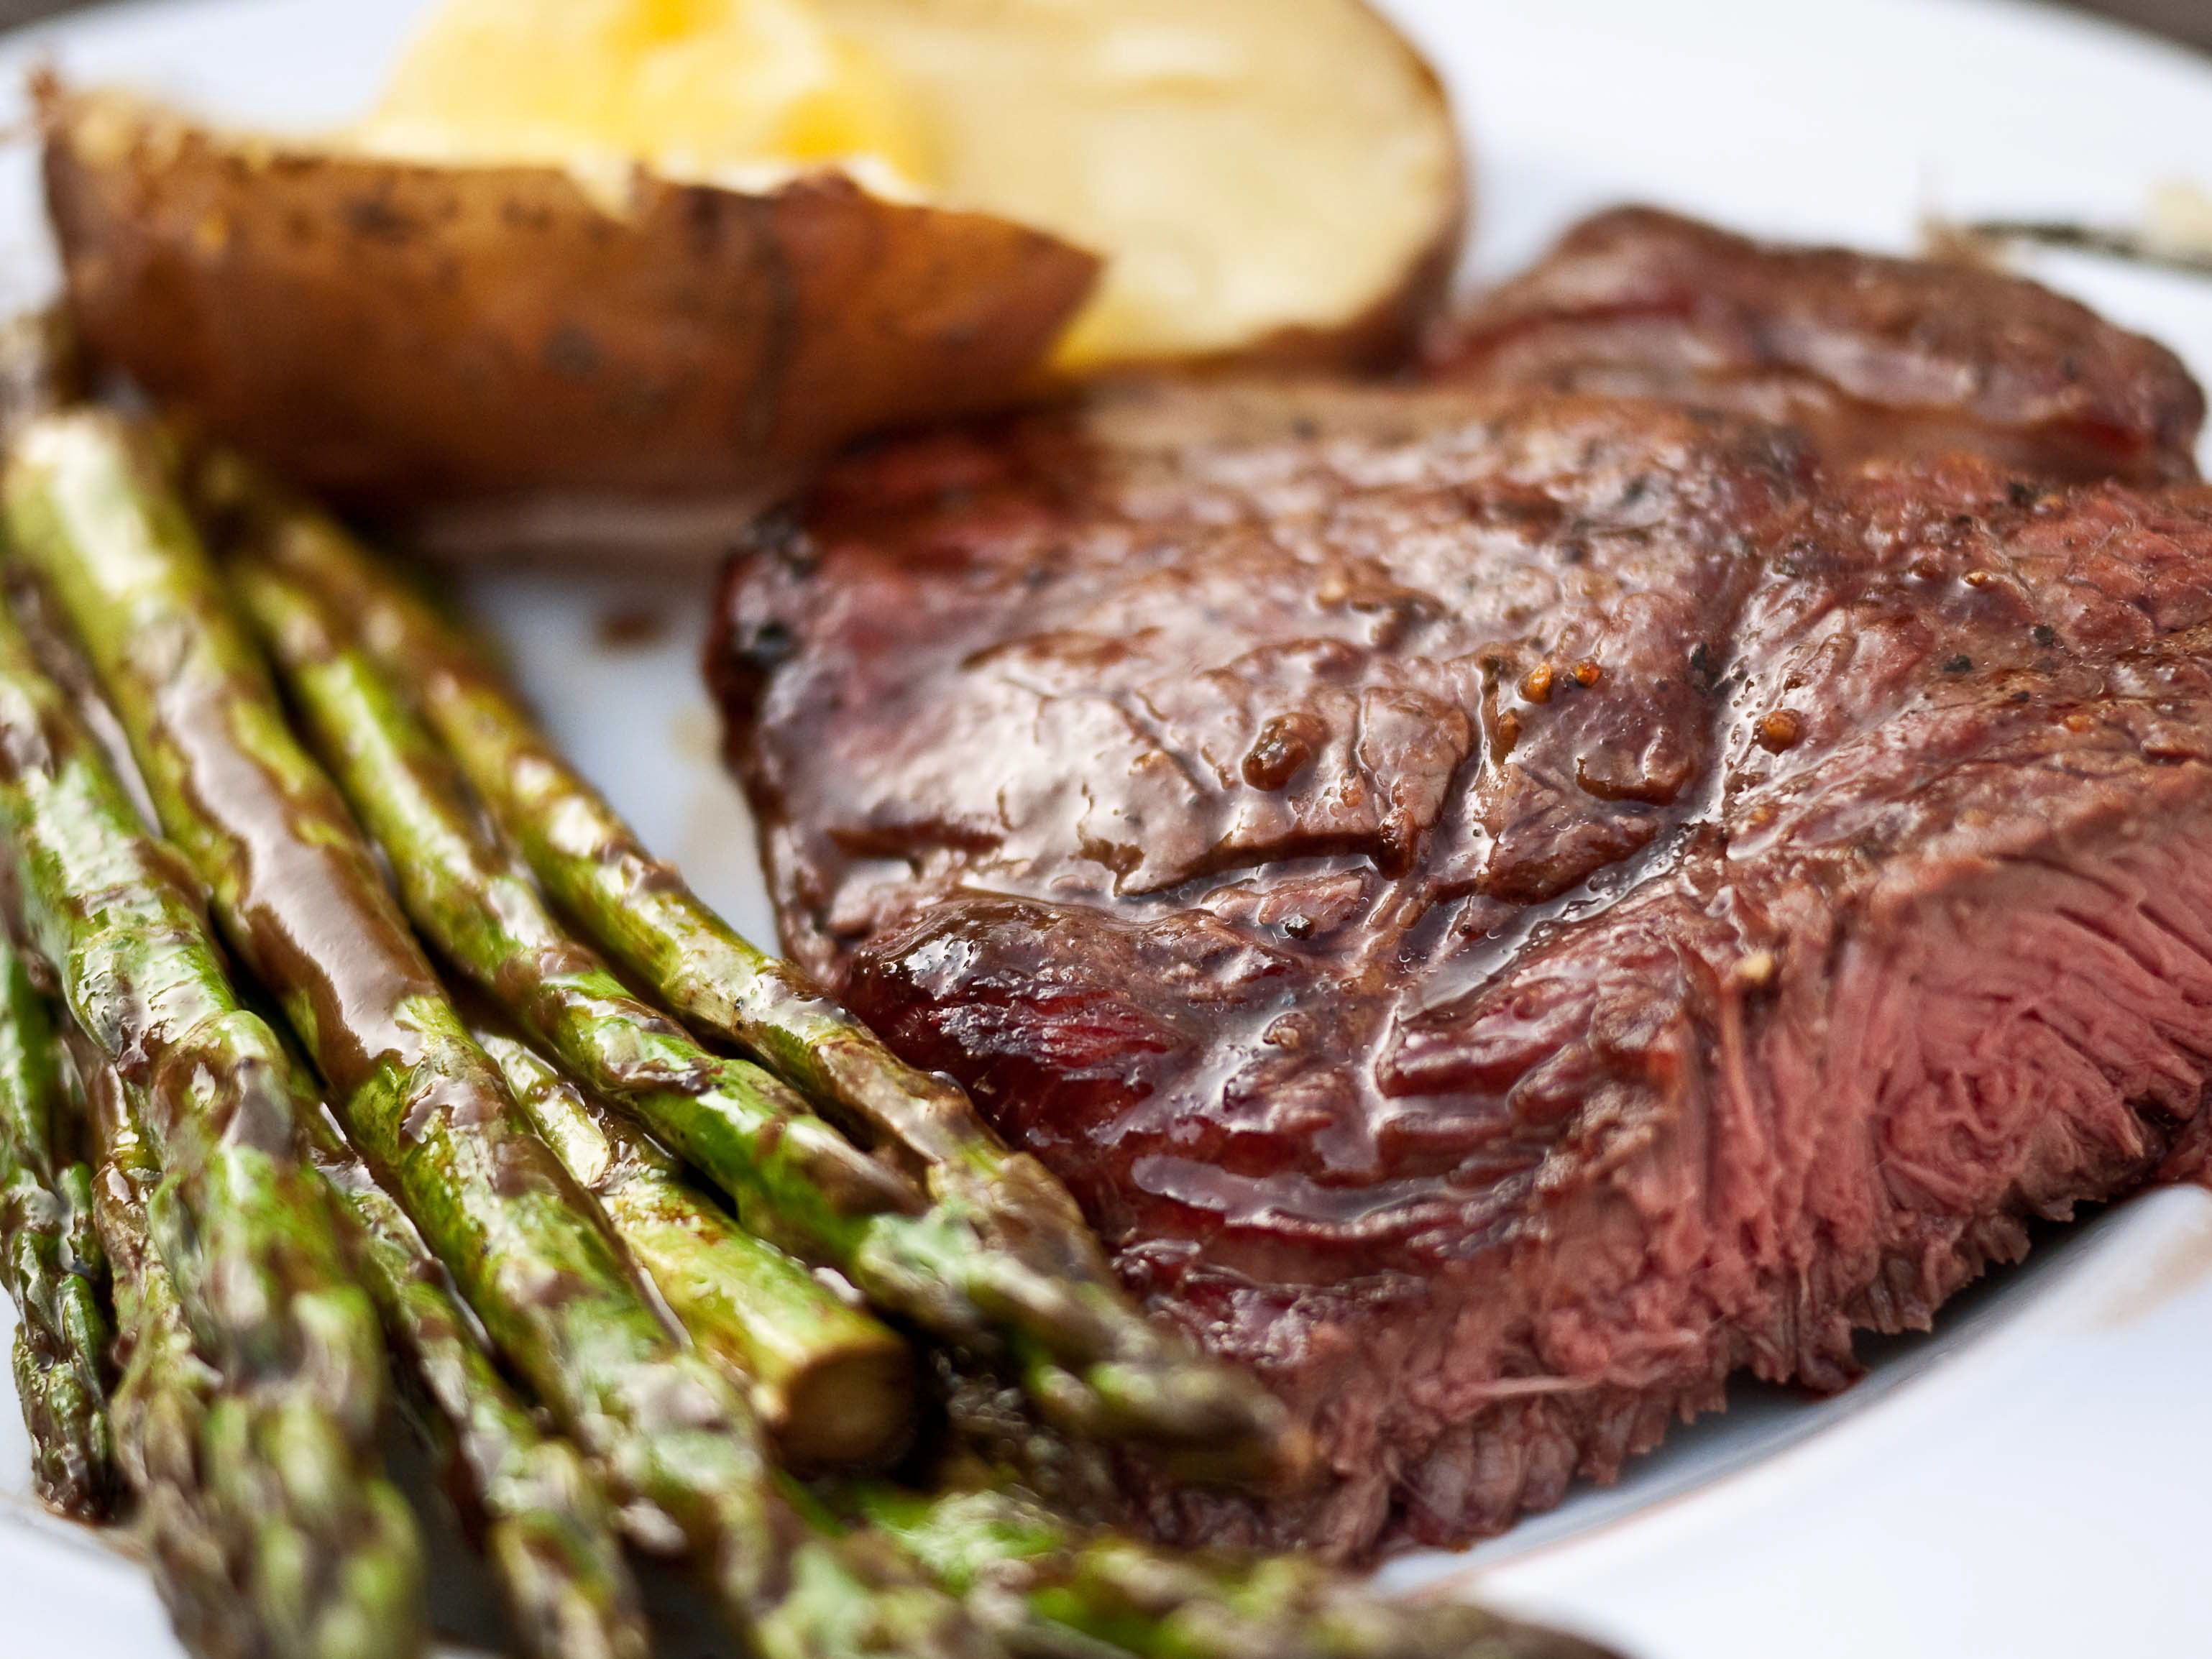 and asparagus sirloin steak with roasted potatoes and asparagus ...